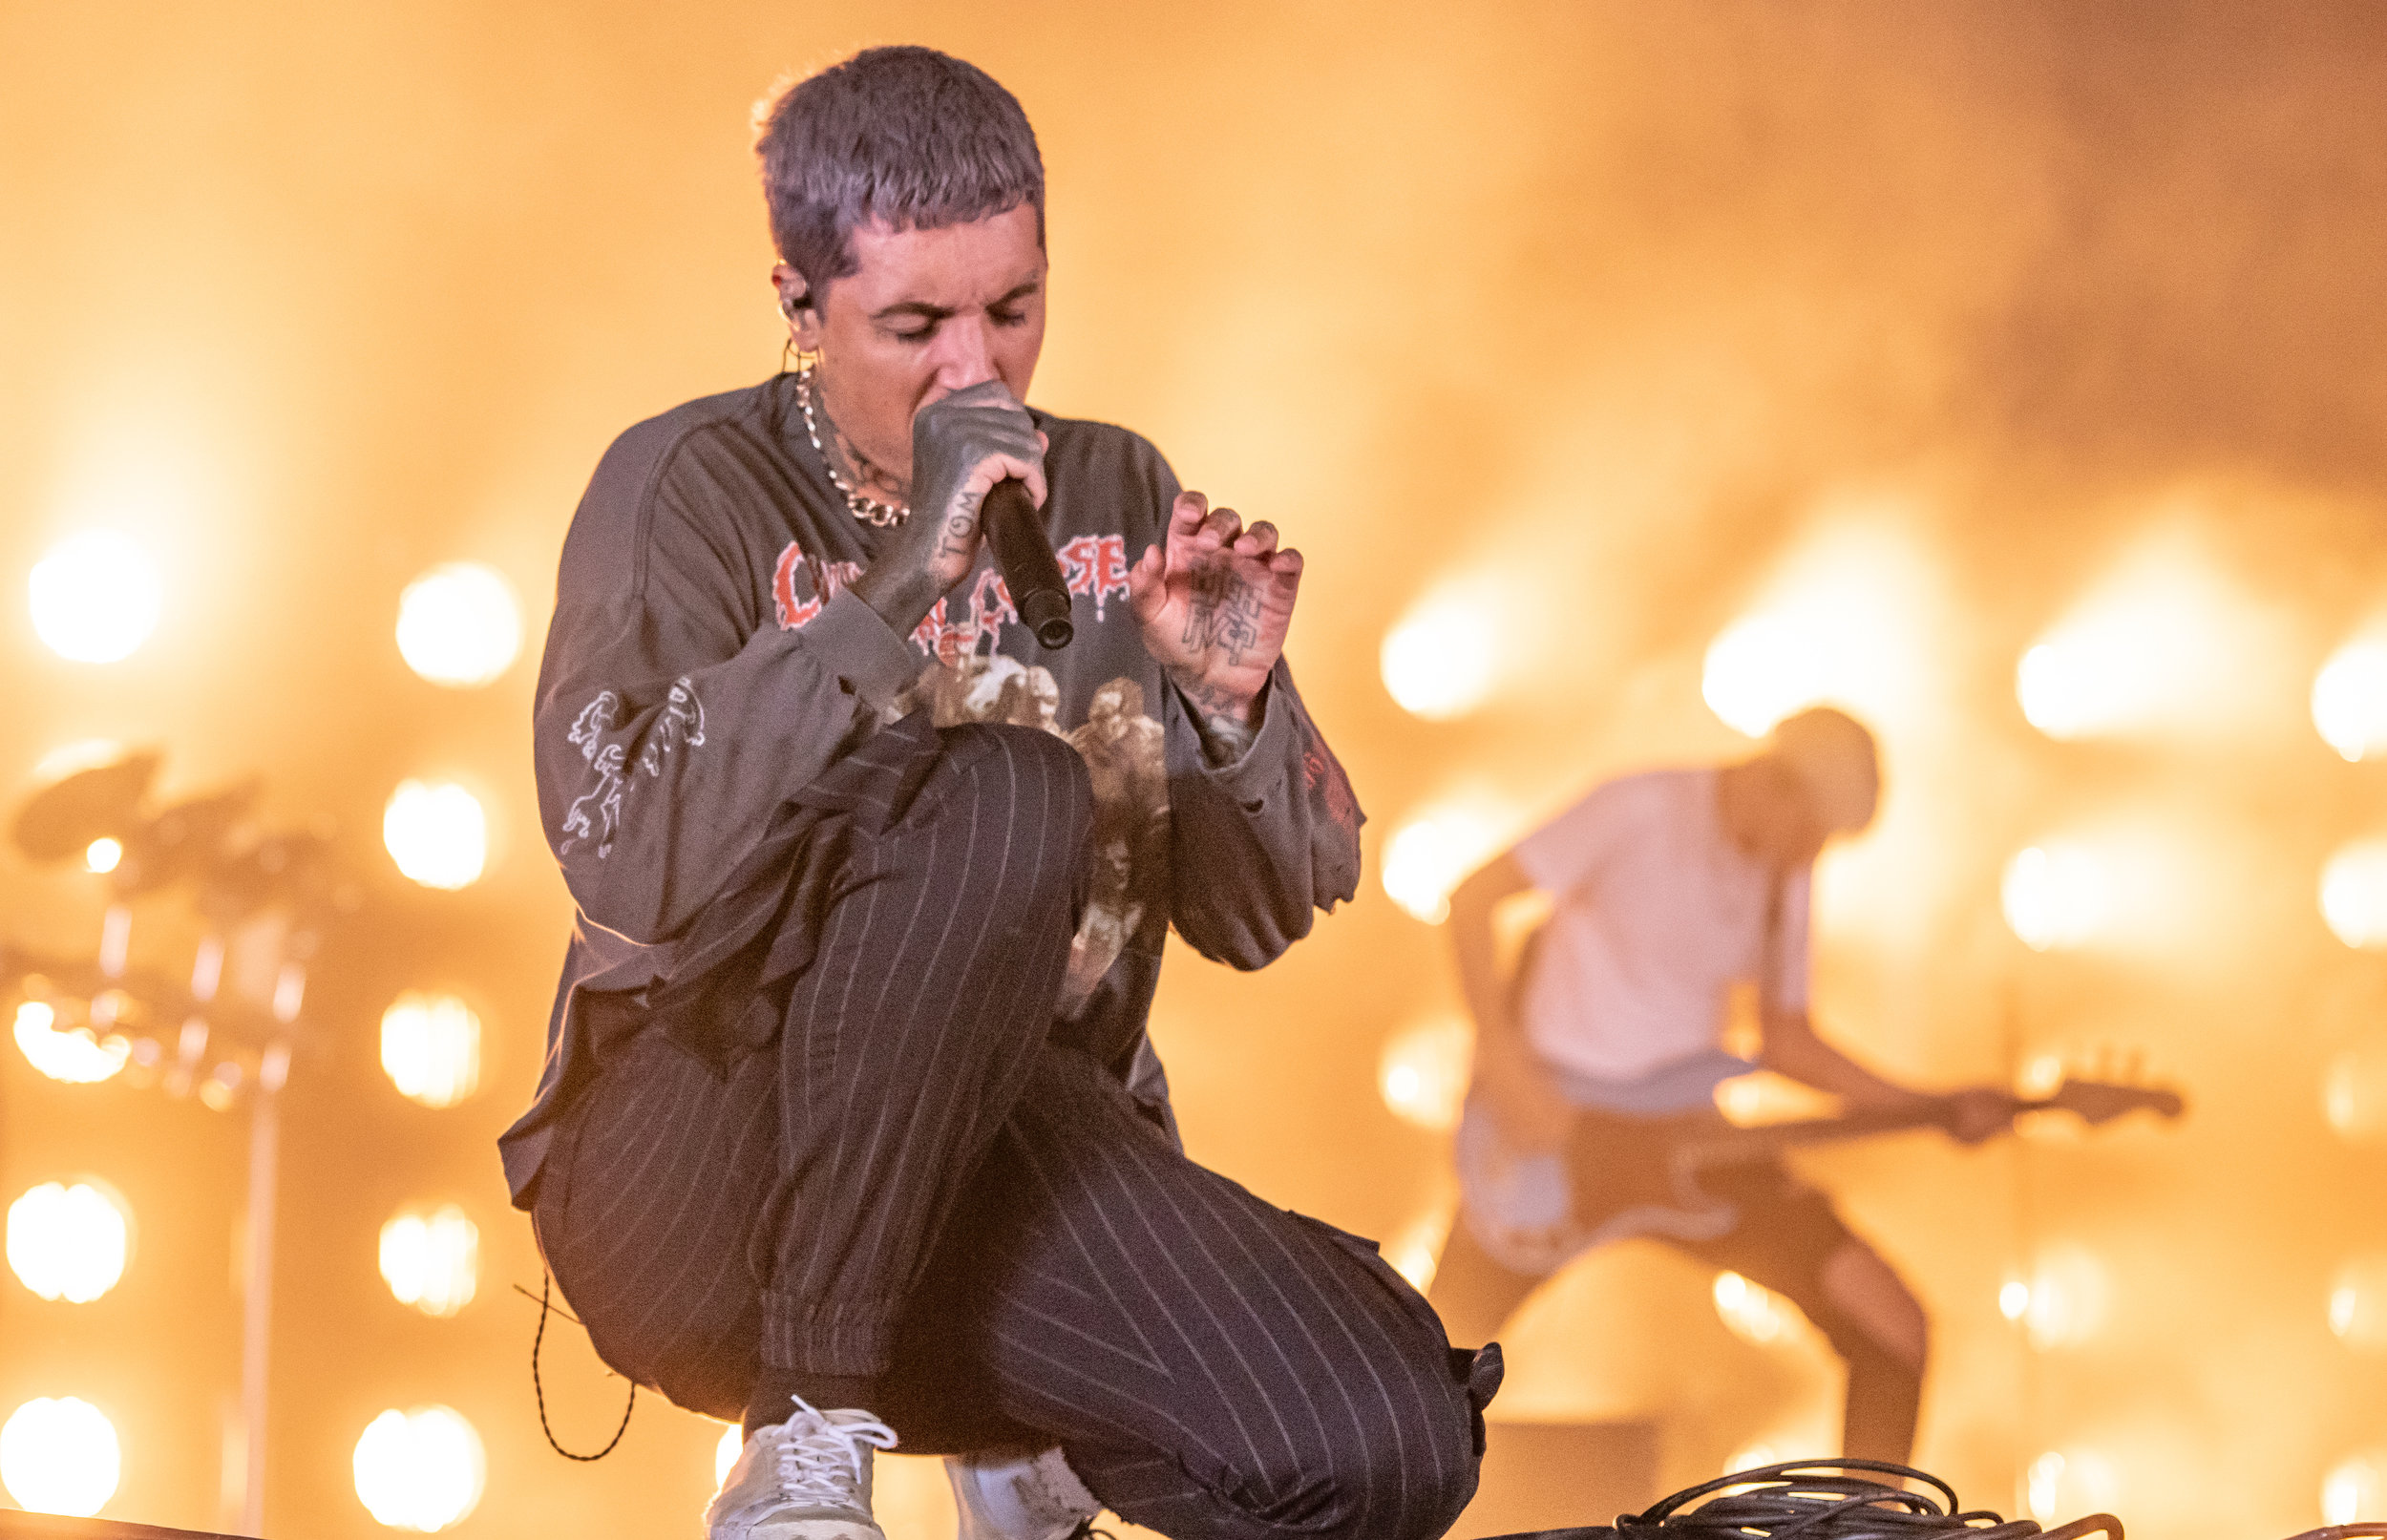 BRING ME THE HORIZON PERFORMING AS SECRET GUESTS OVER ON BBC RADIO 1 STAGE AT SECOND DAY OF LEEDS FESTIVAL 2018 - 25.08.2018  PICTURE BY: CALUM BUCHAN PHOTOGRAPHY